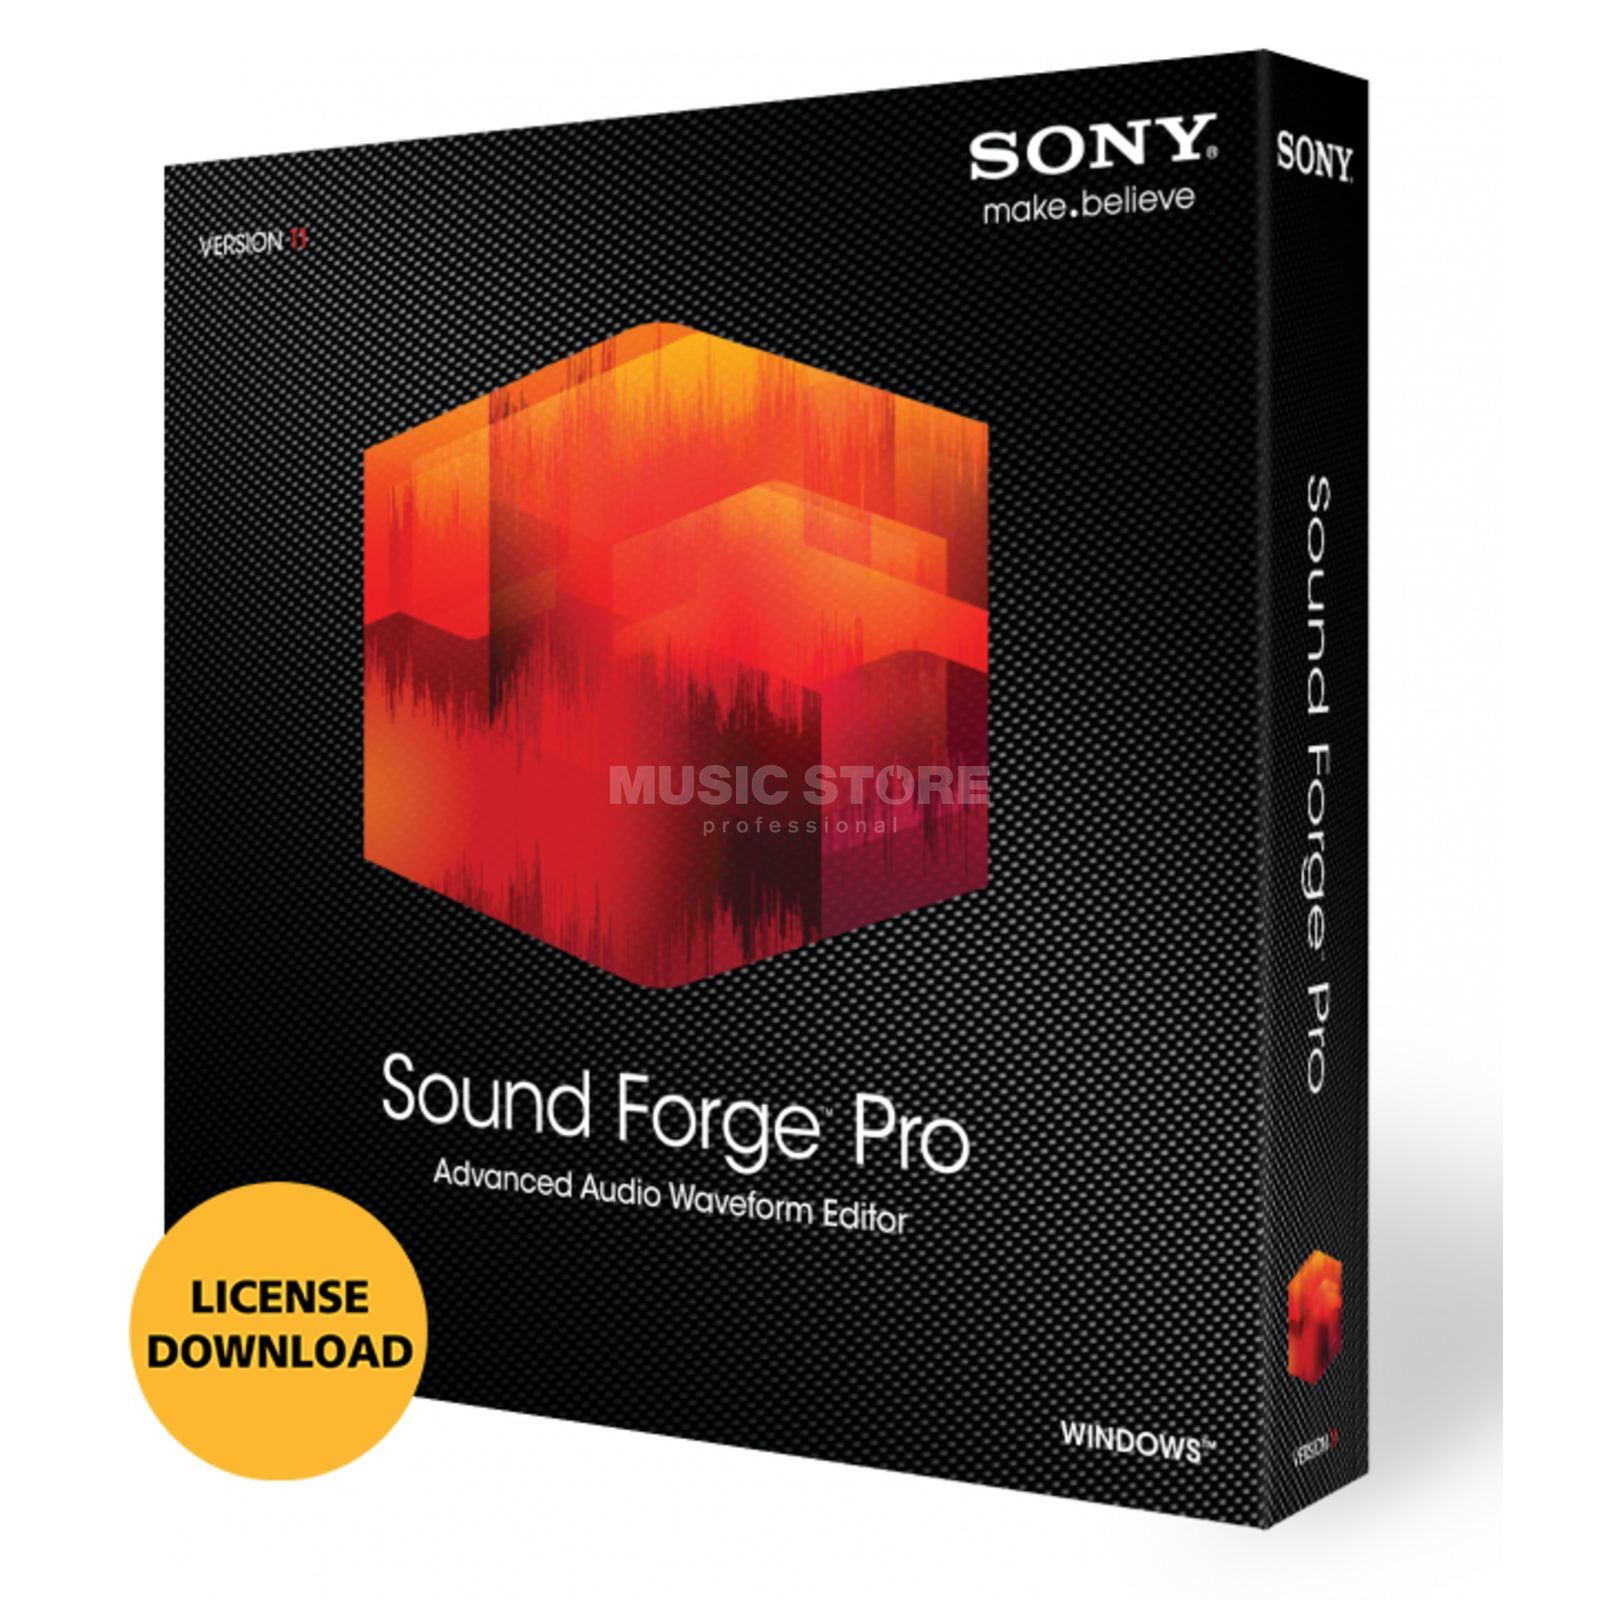 Sony Sound Forge Pro 11 PC (Lizenzcode) Produktbild